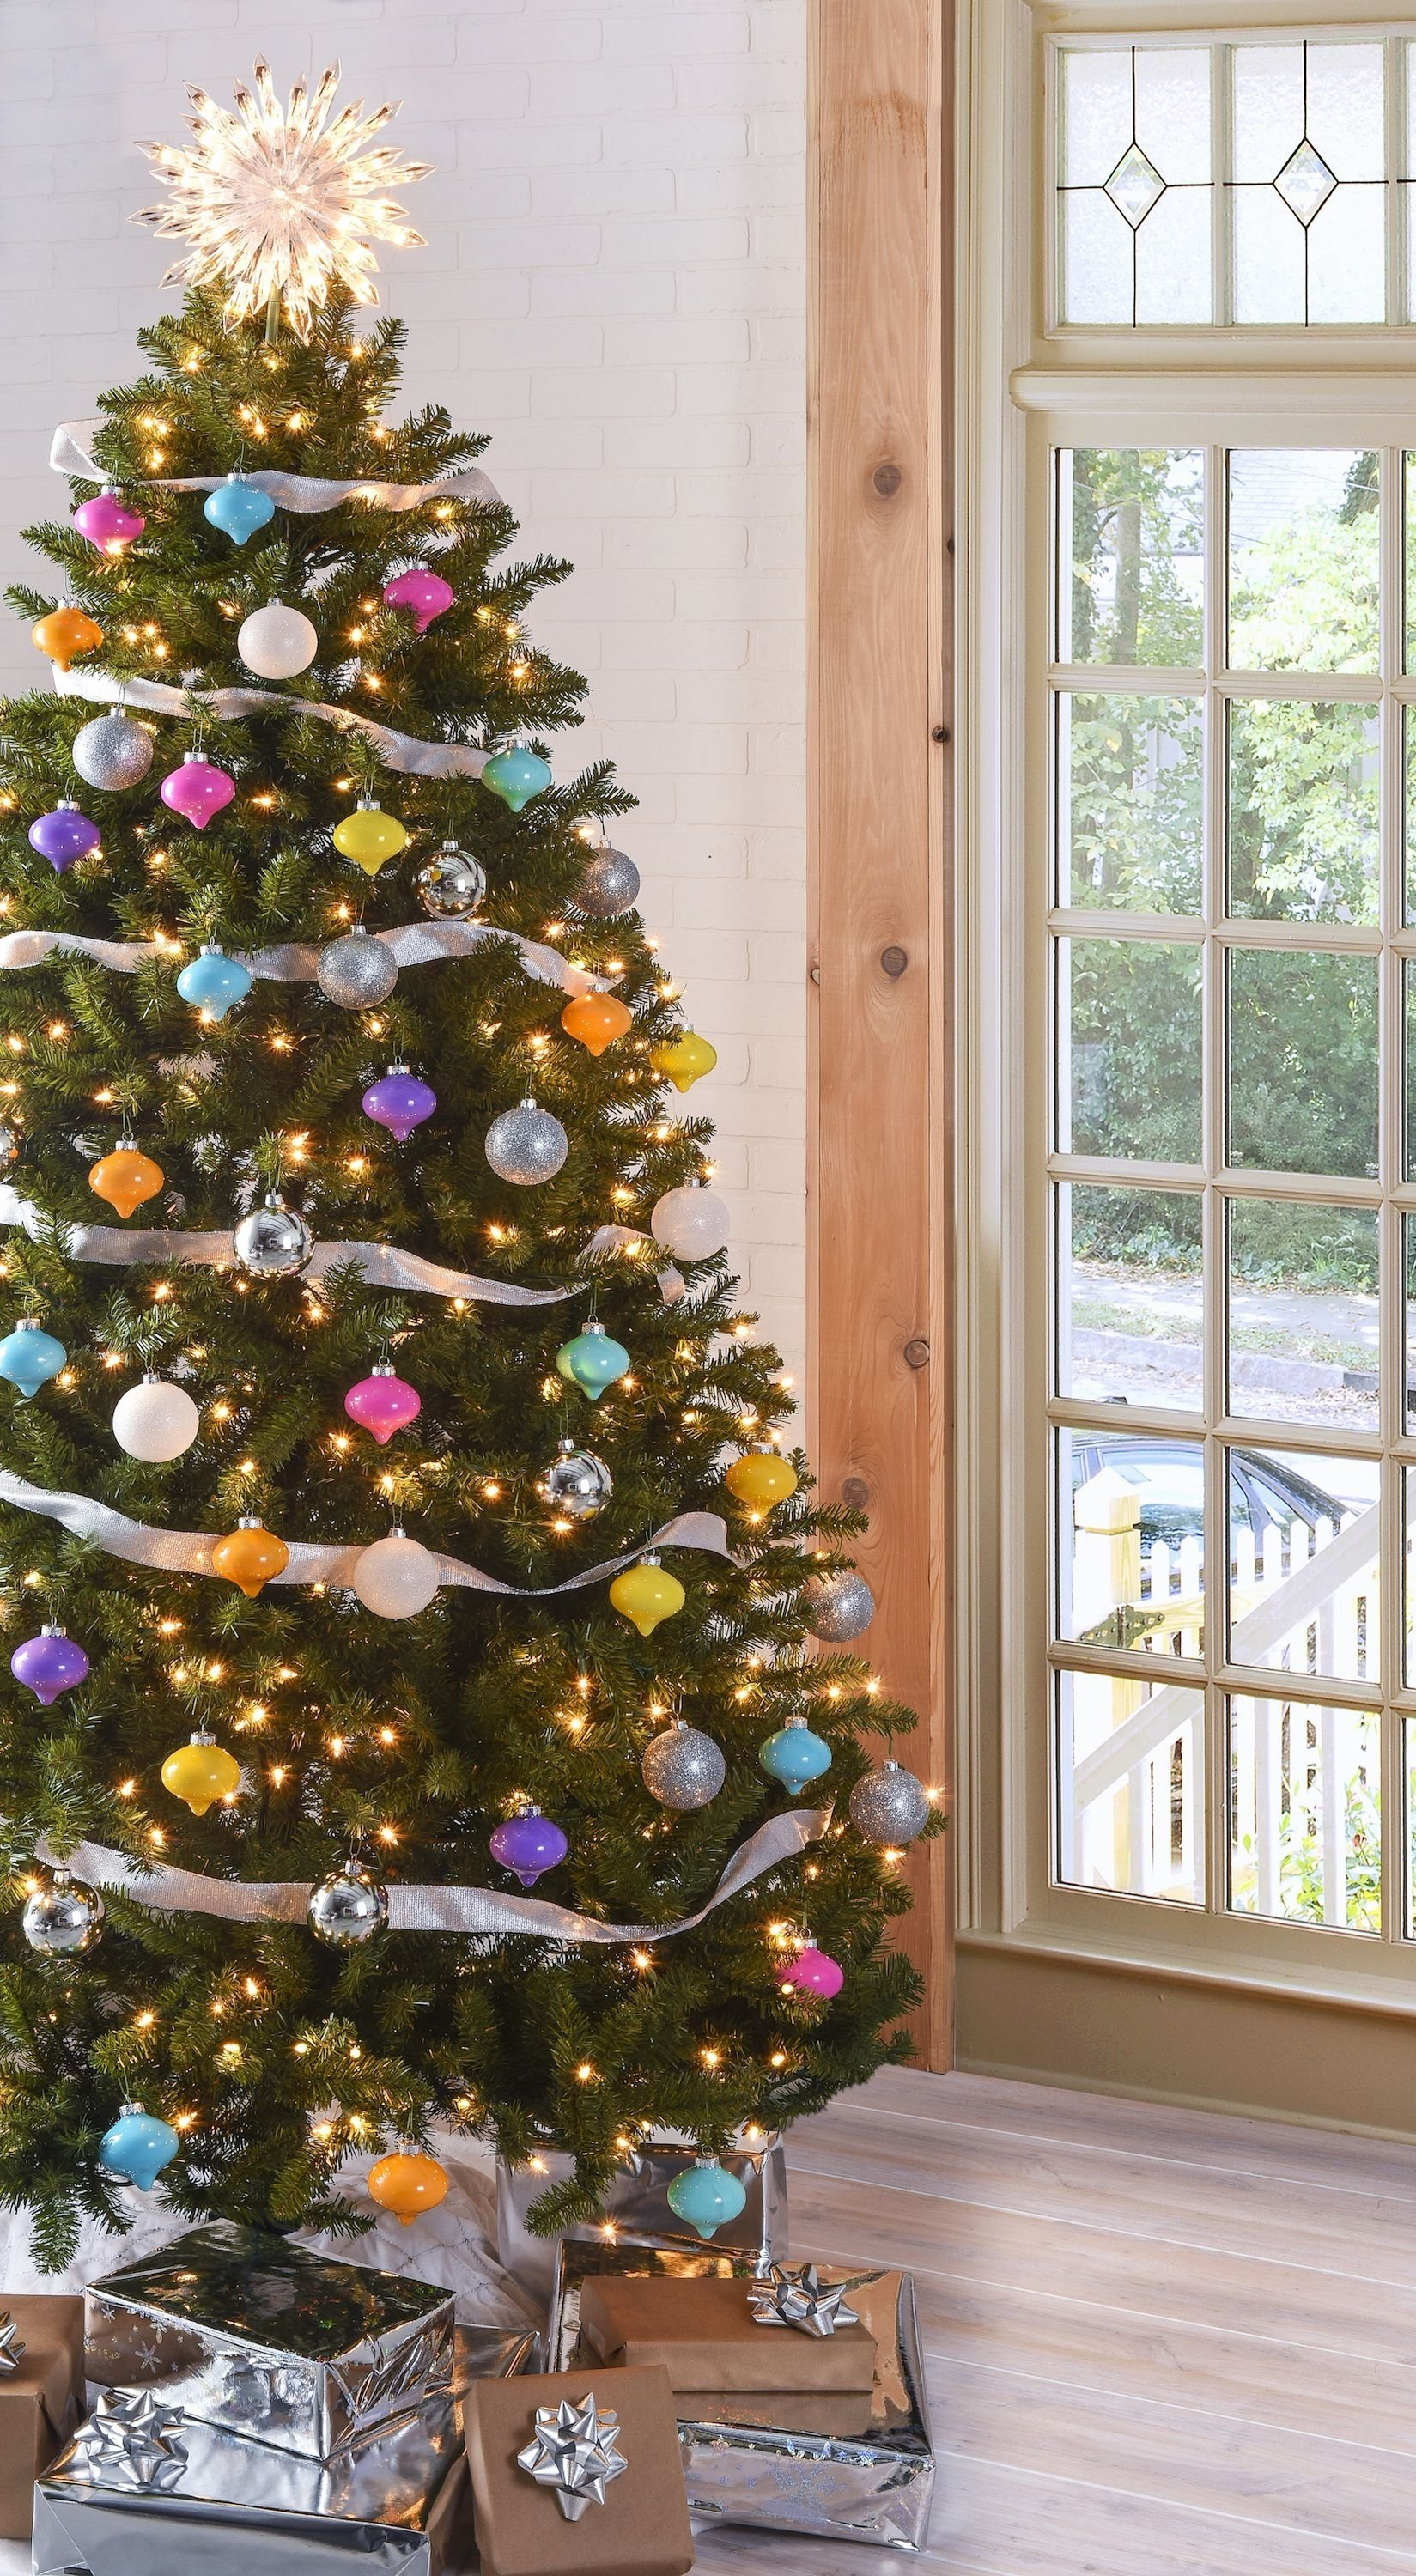 10 Ideal Ideas For Decorating Christmas Trees 30 beautiful christmas tree decoration ideas 2017 3 2020